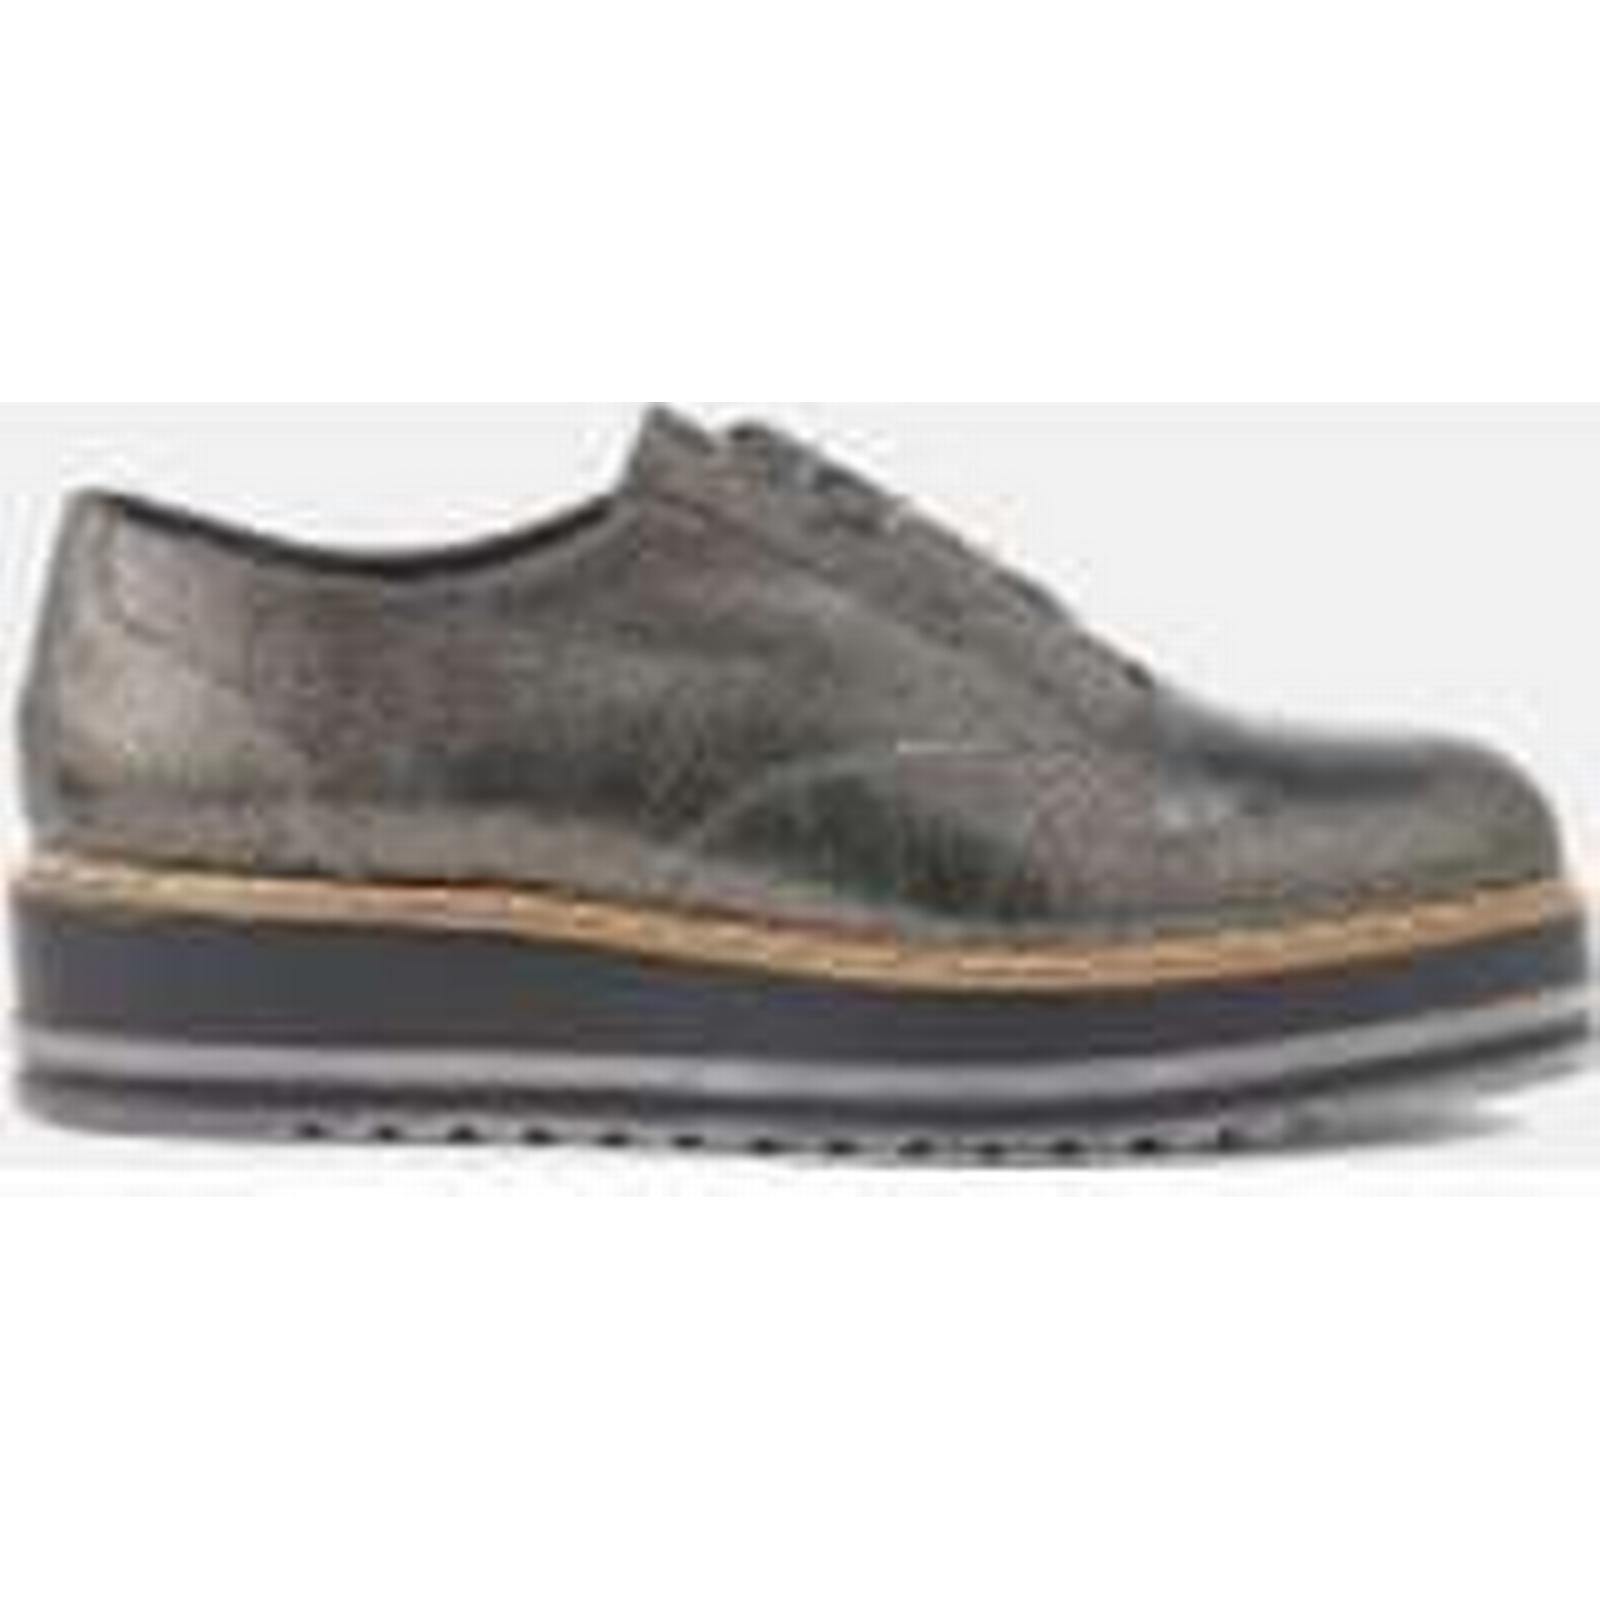 Dune Women's Follow Leather - Oxford Shoes - Pewter - Leather UK 7 - Silver dd80d4